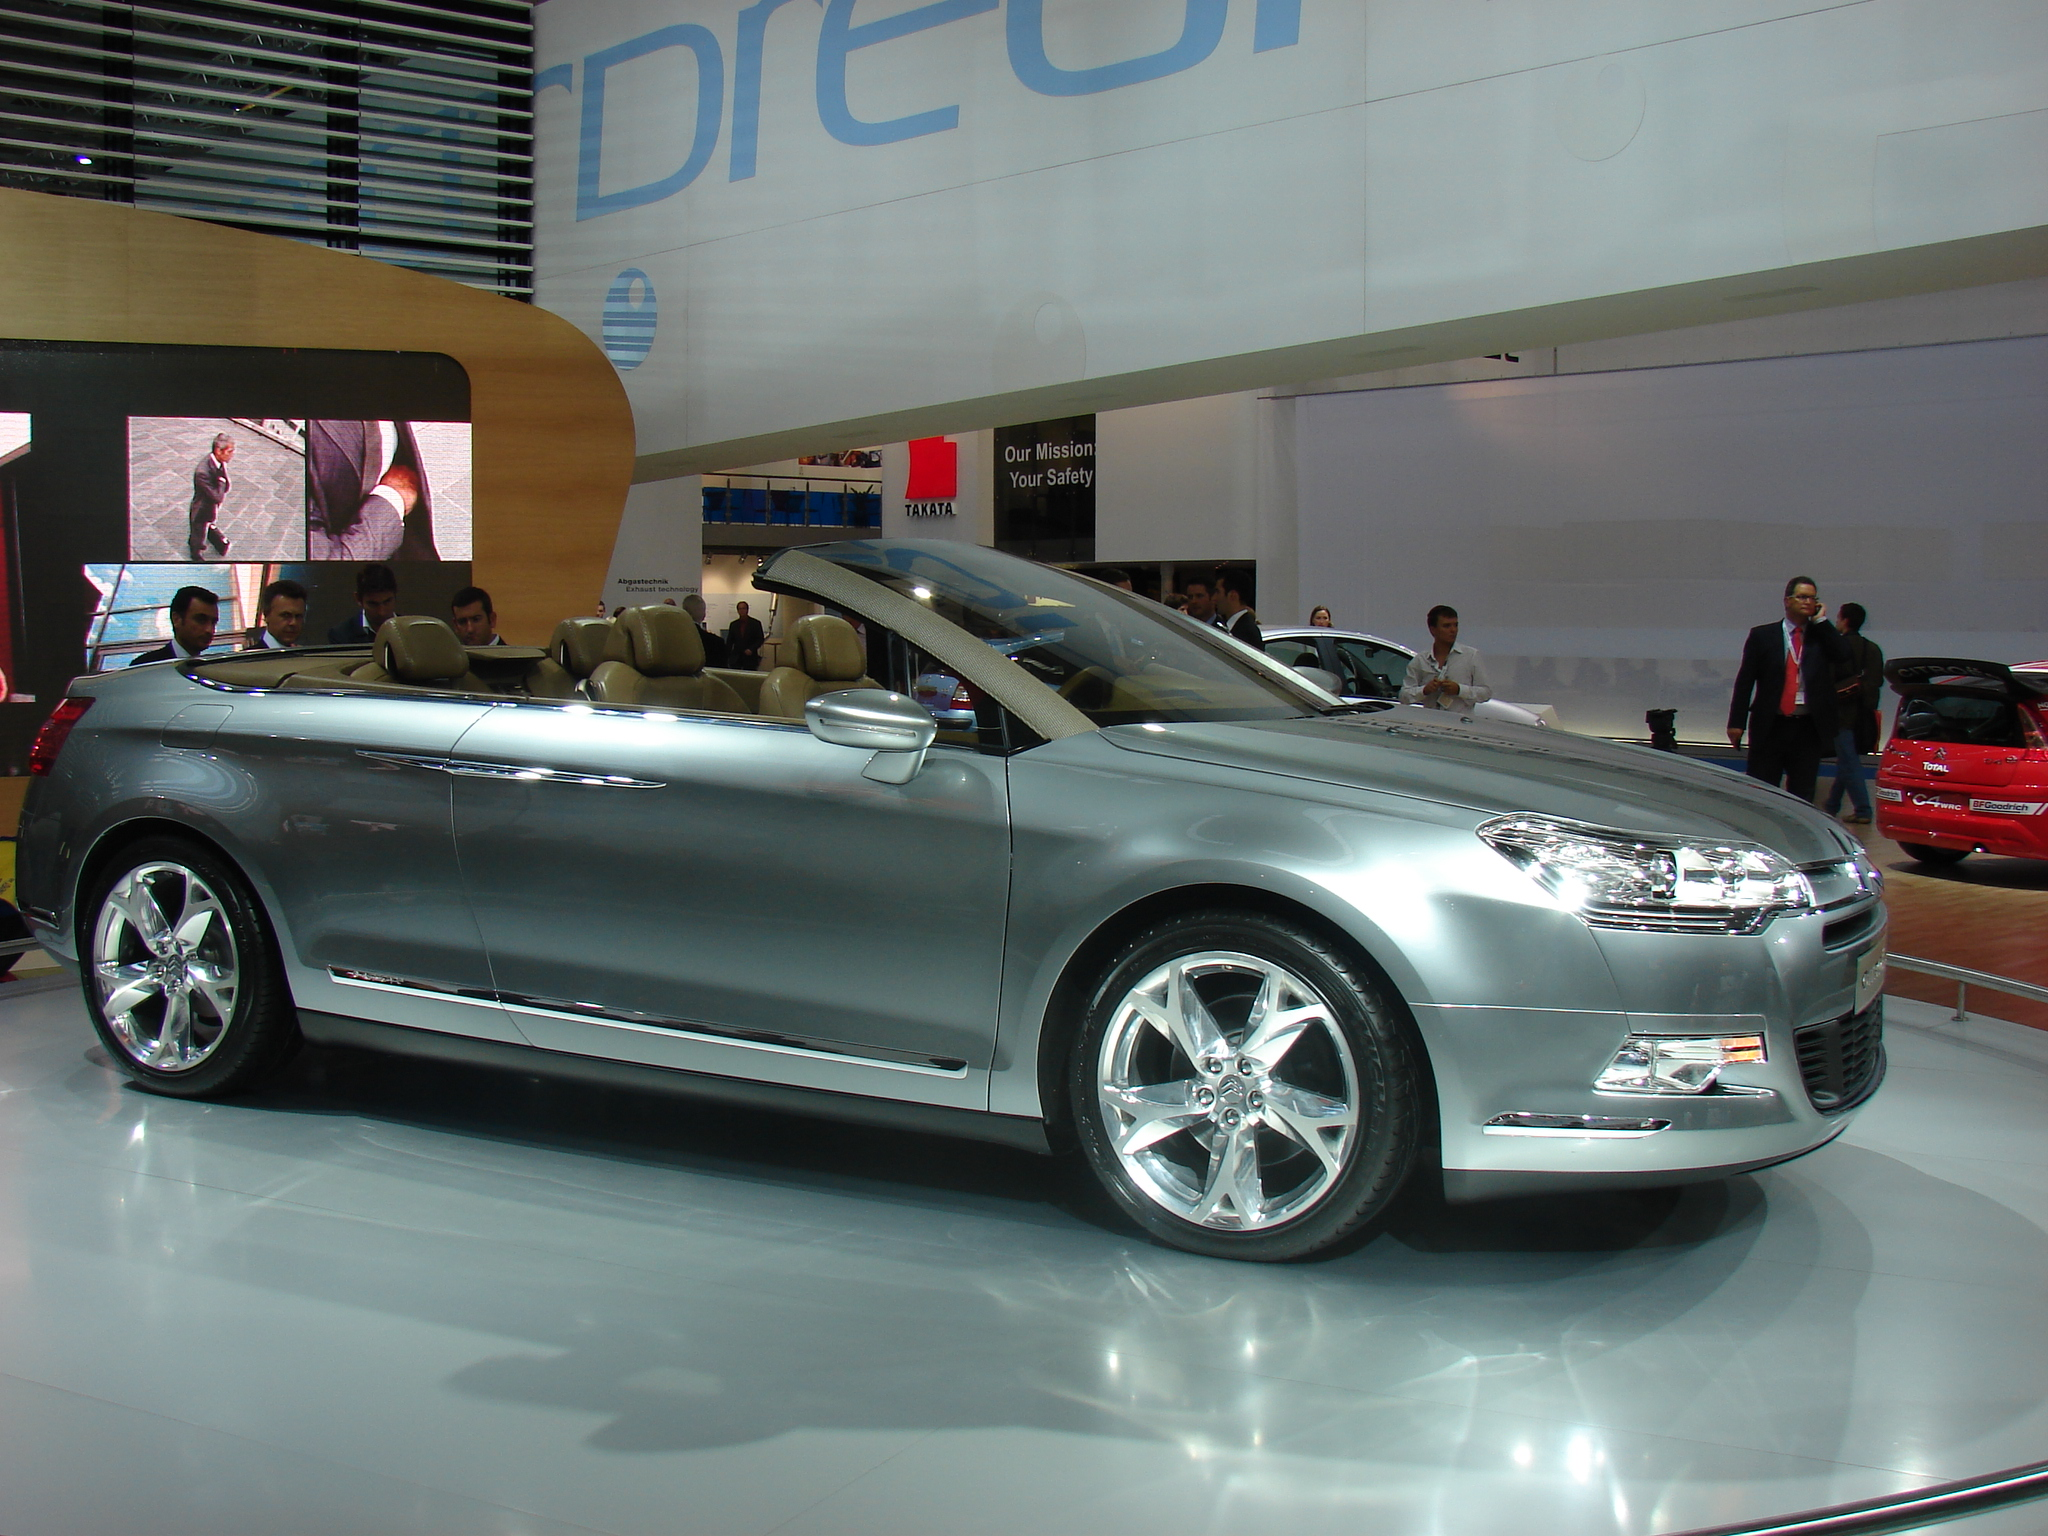 Diginpix entity citroen c5 airscape zoom link vanachro Image collections